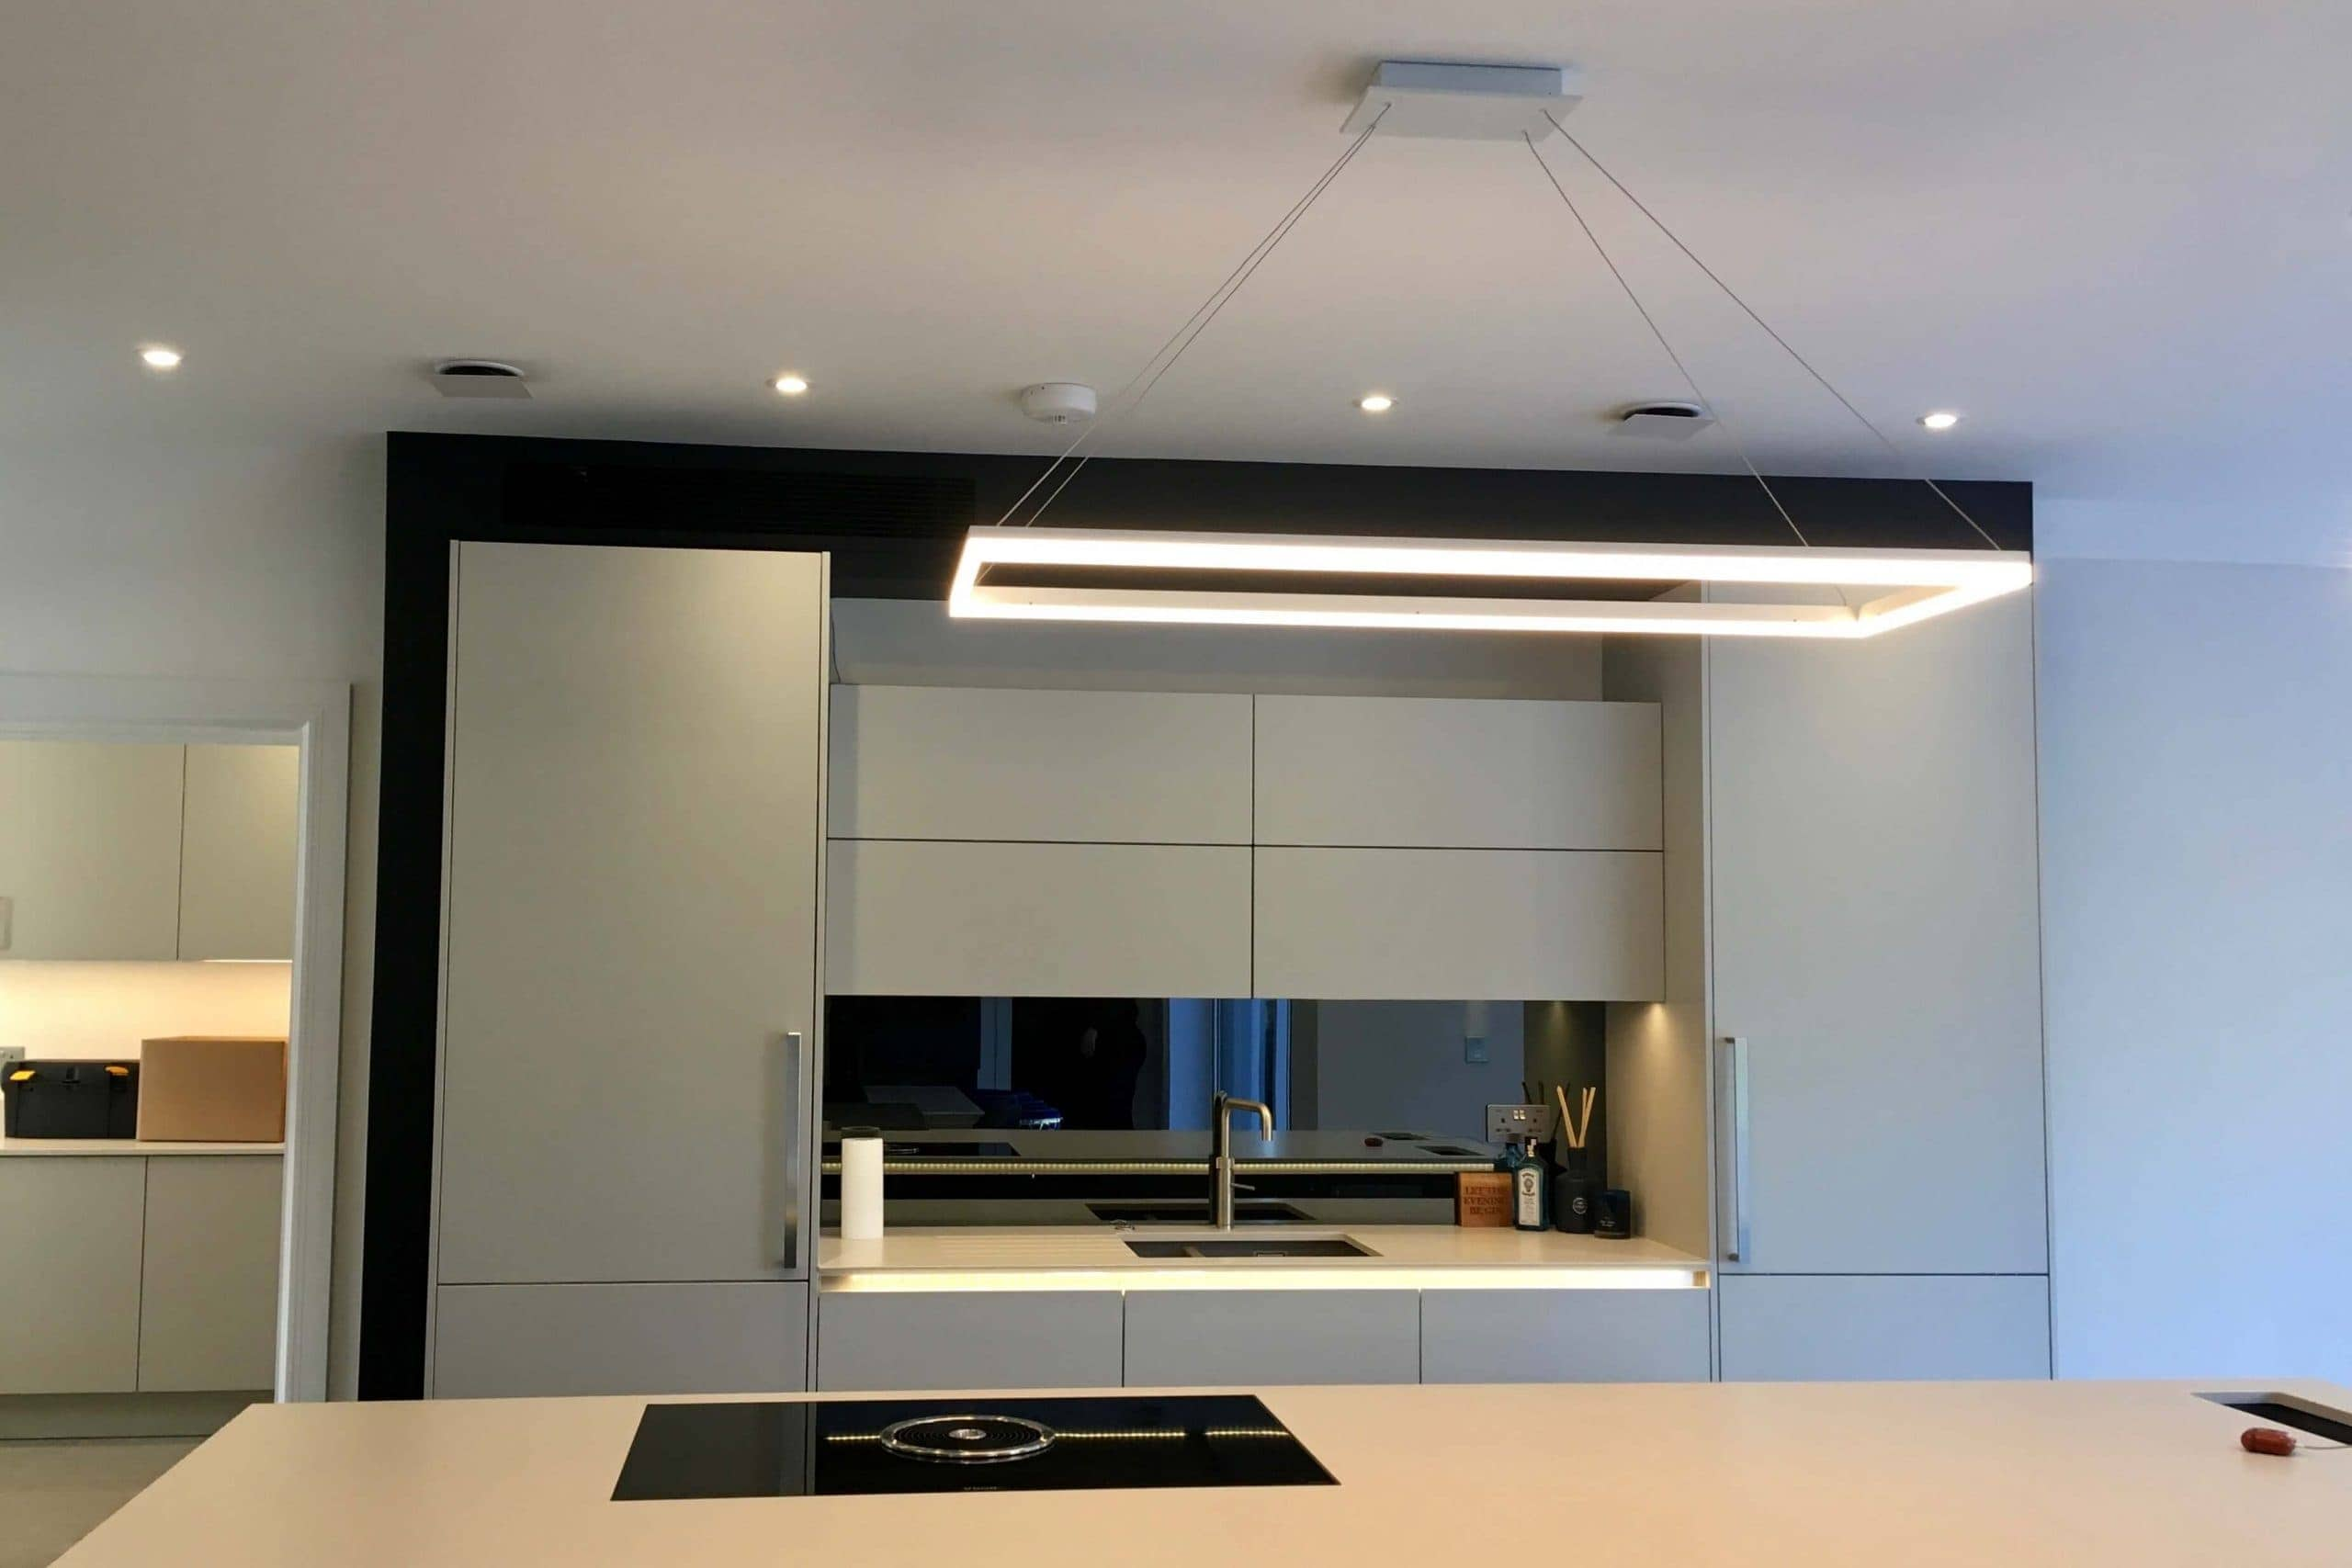 Scandia Hus new build kitchen with invisible Mitsubishi air con grill and MVHR system by SubCool FM hidden door to chill room shut